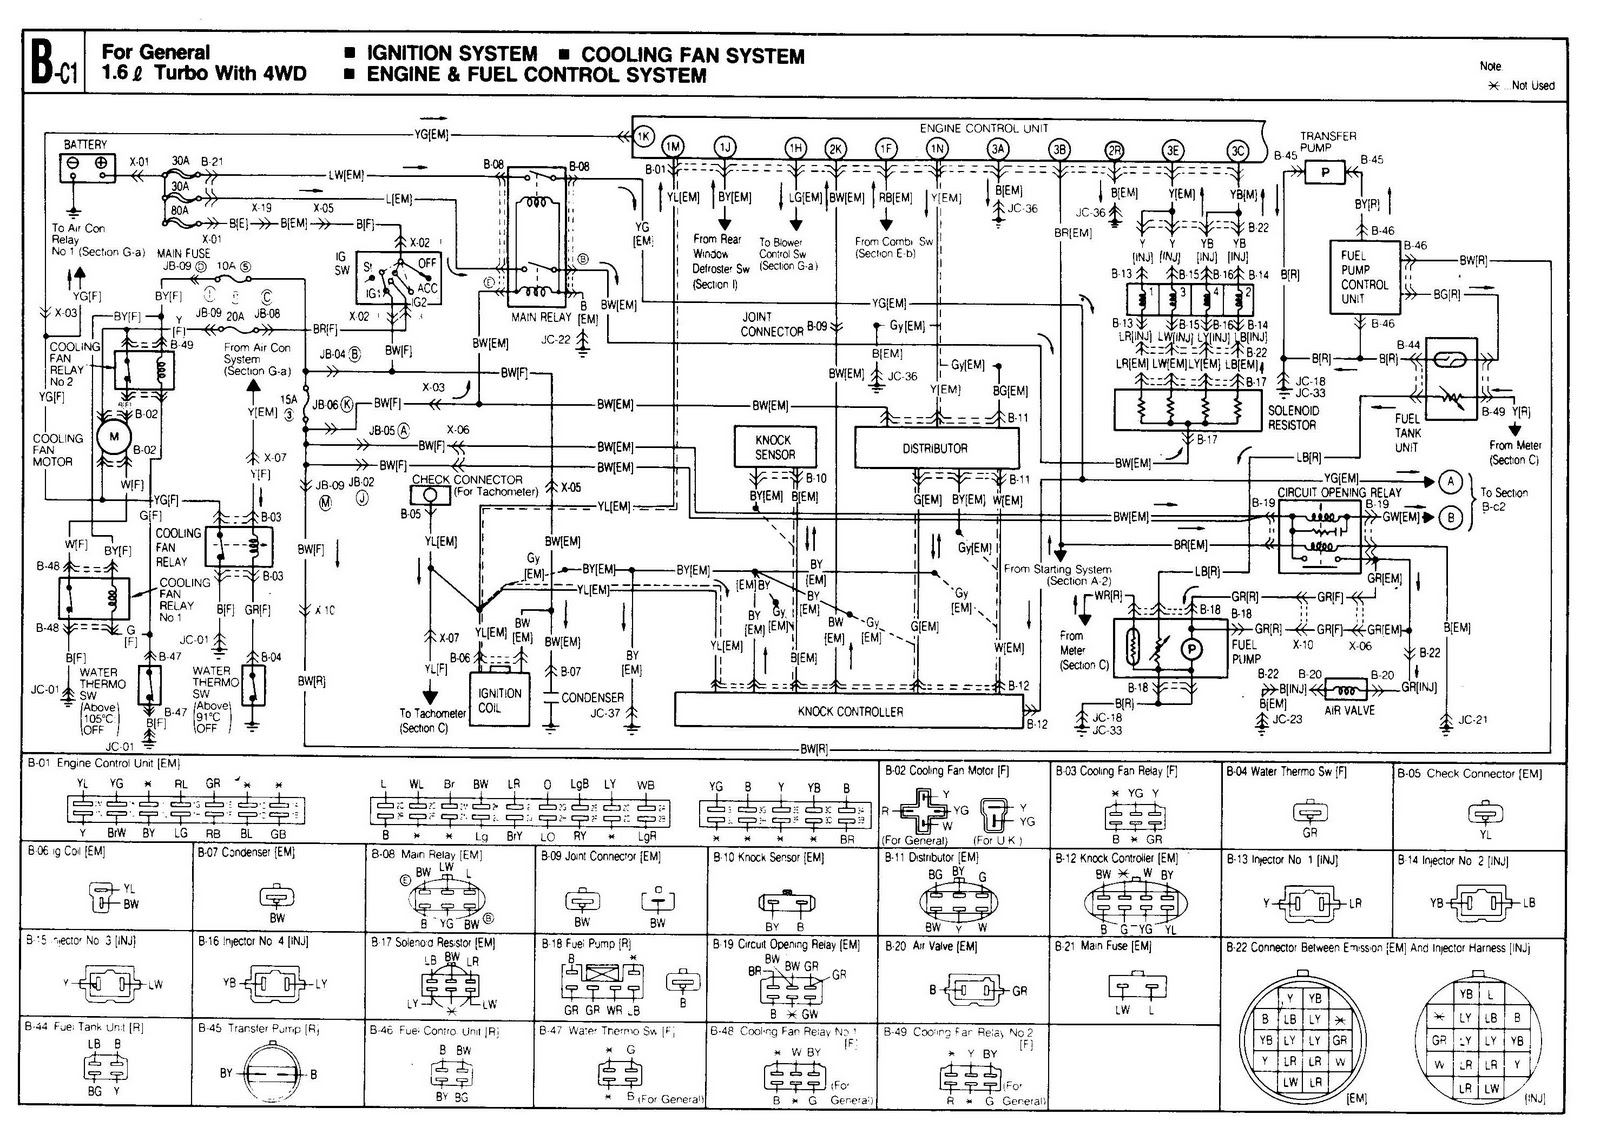 Mazda Understanding Wiring Diagram | Service Manual guide